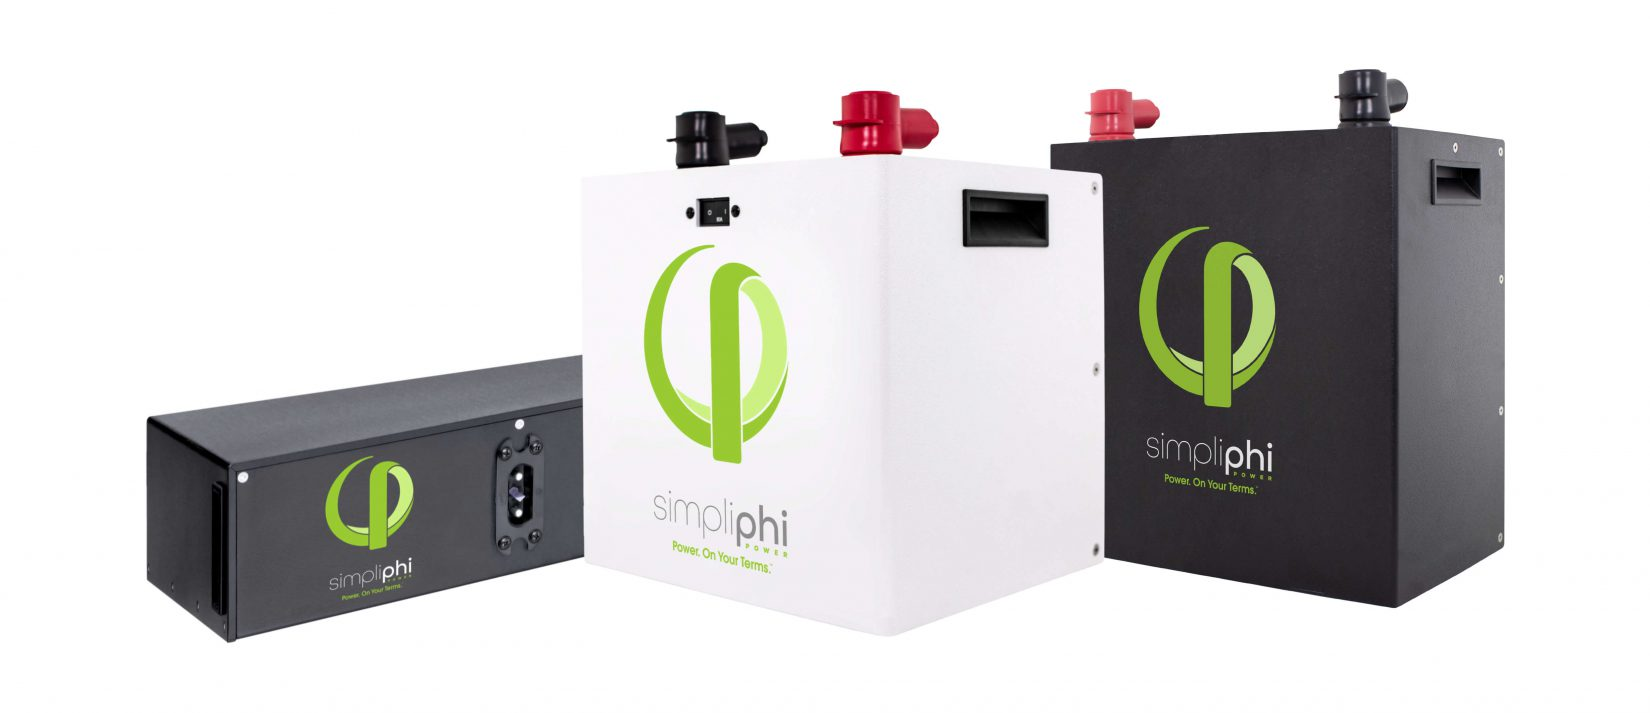 Simpliphi Power Batteries